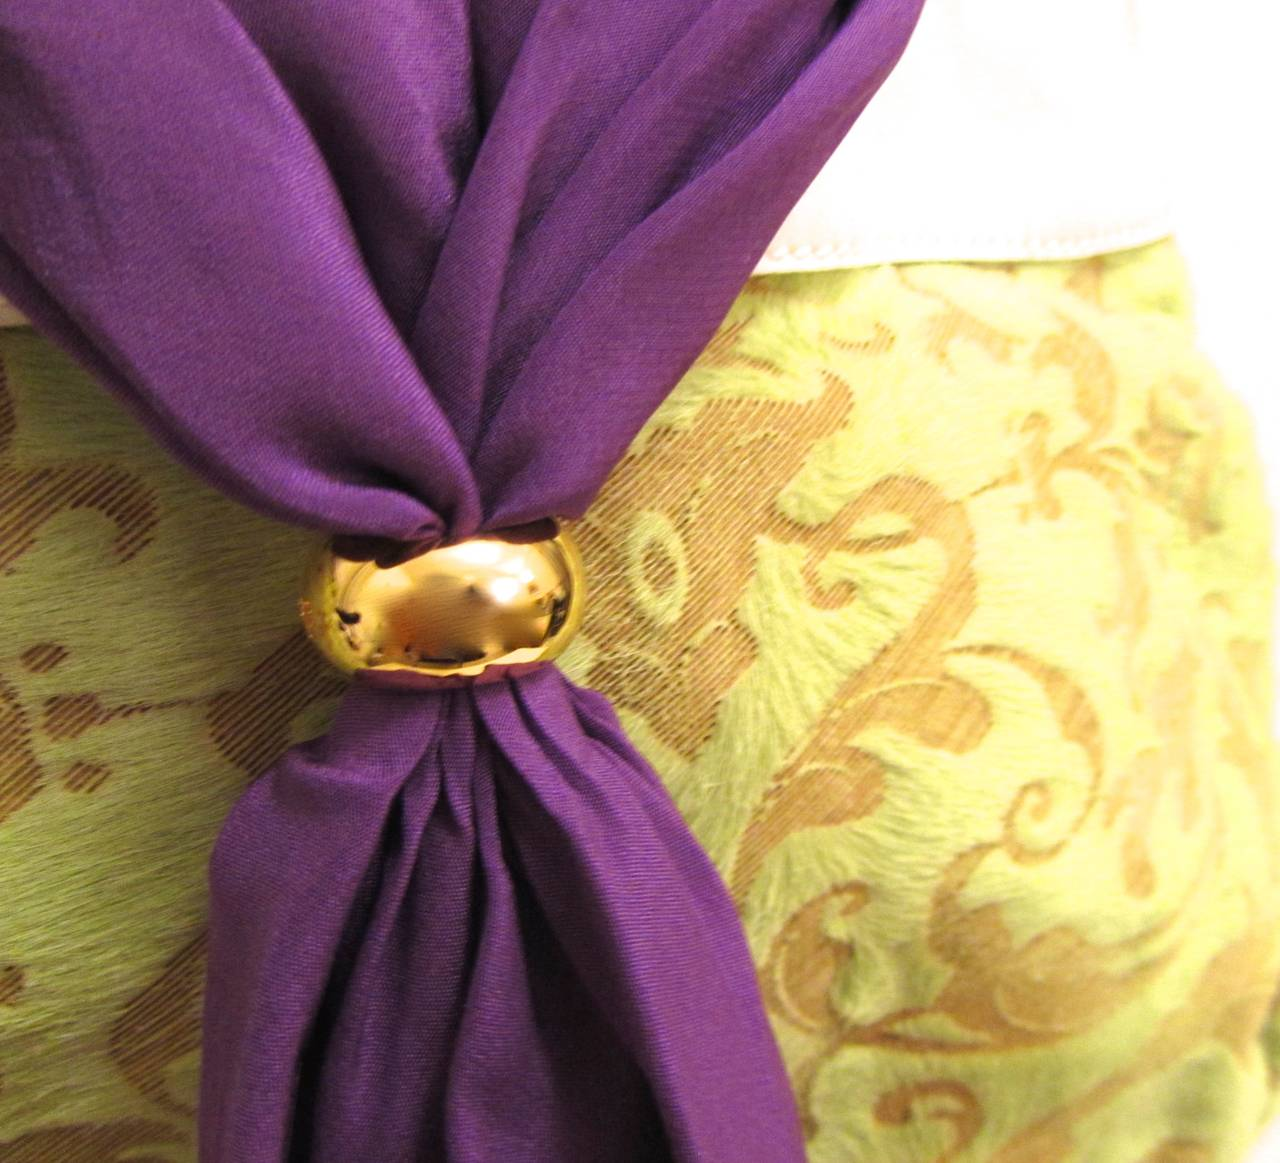 De Grisogono Geneve Couture Hand Bag - Green, White, and Purple In New Never_worn Condition For Sale In Boca Raton, FL